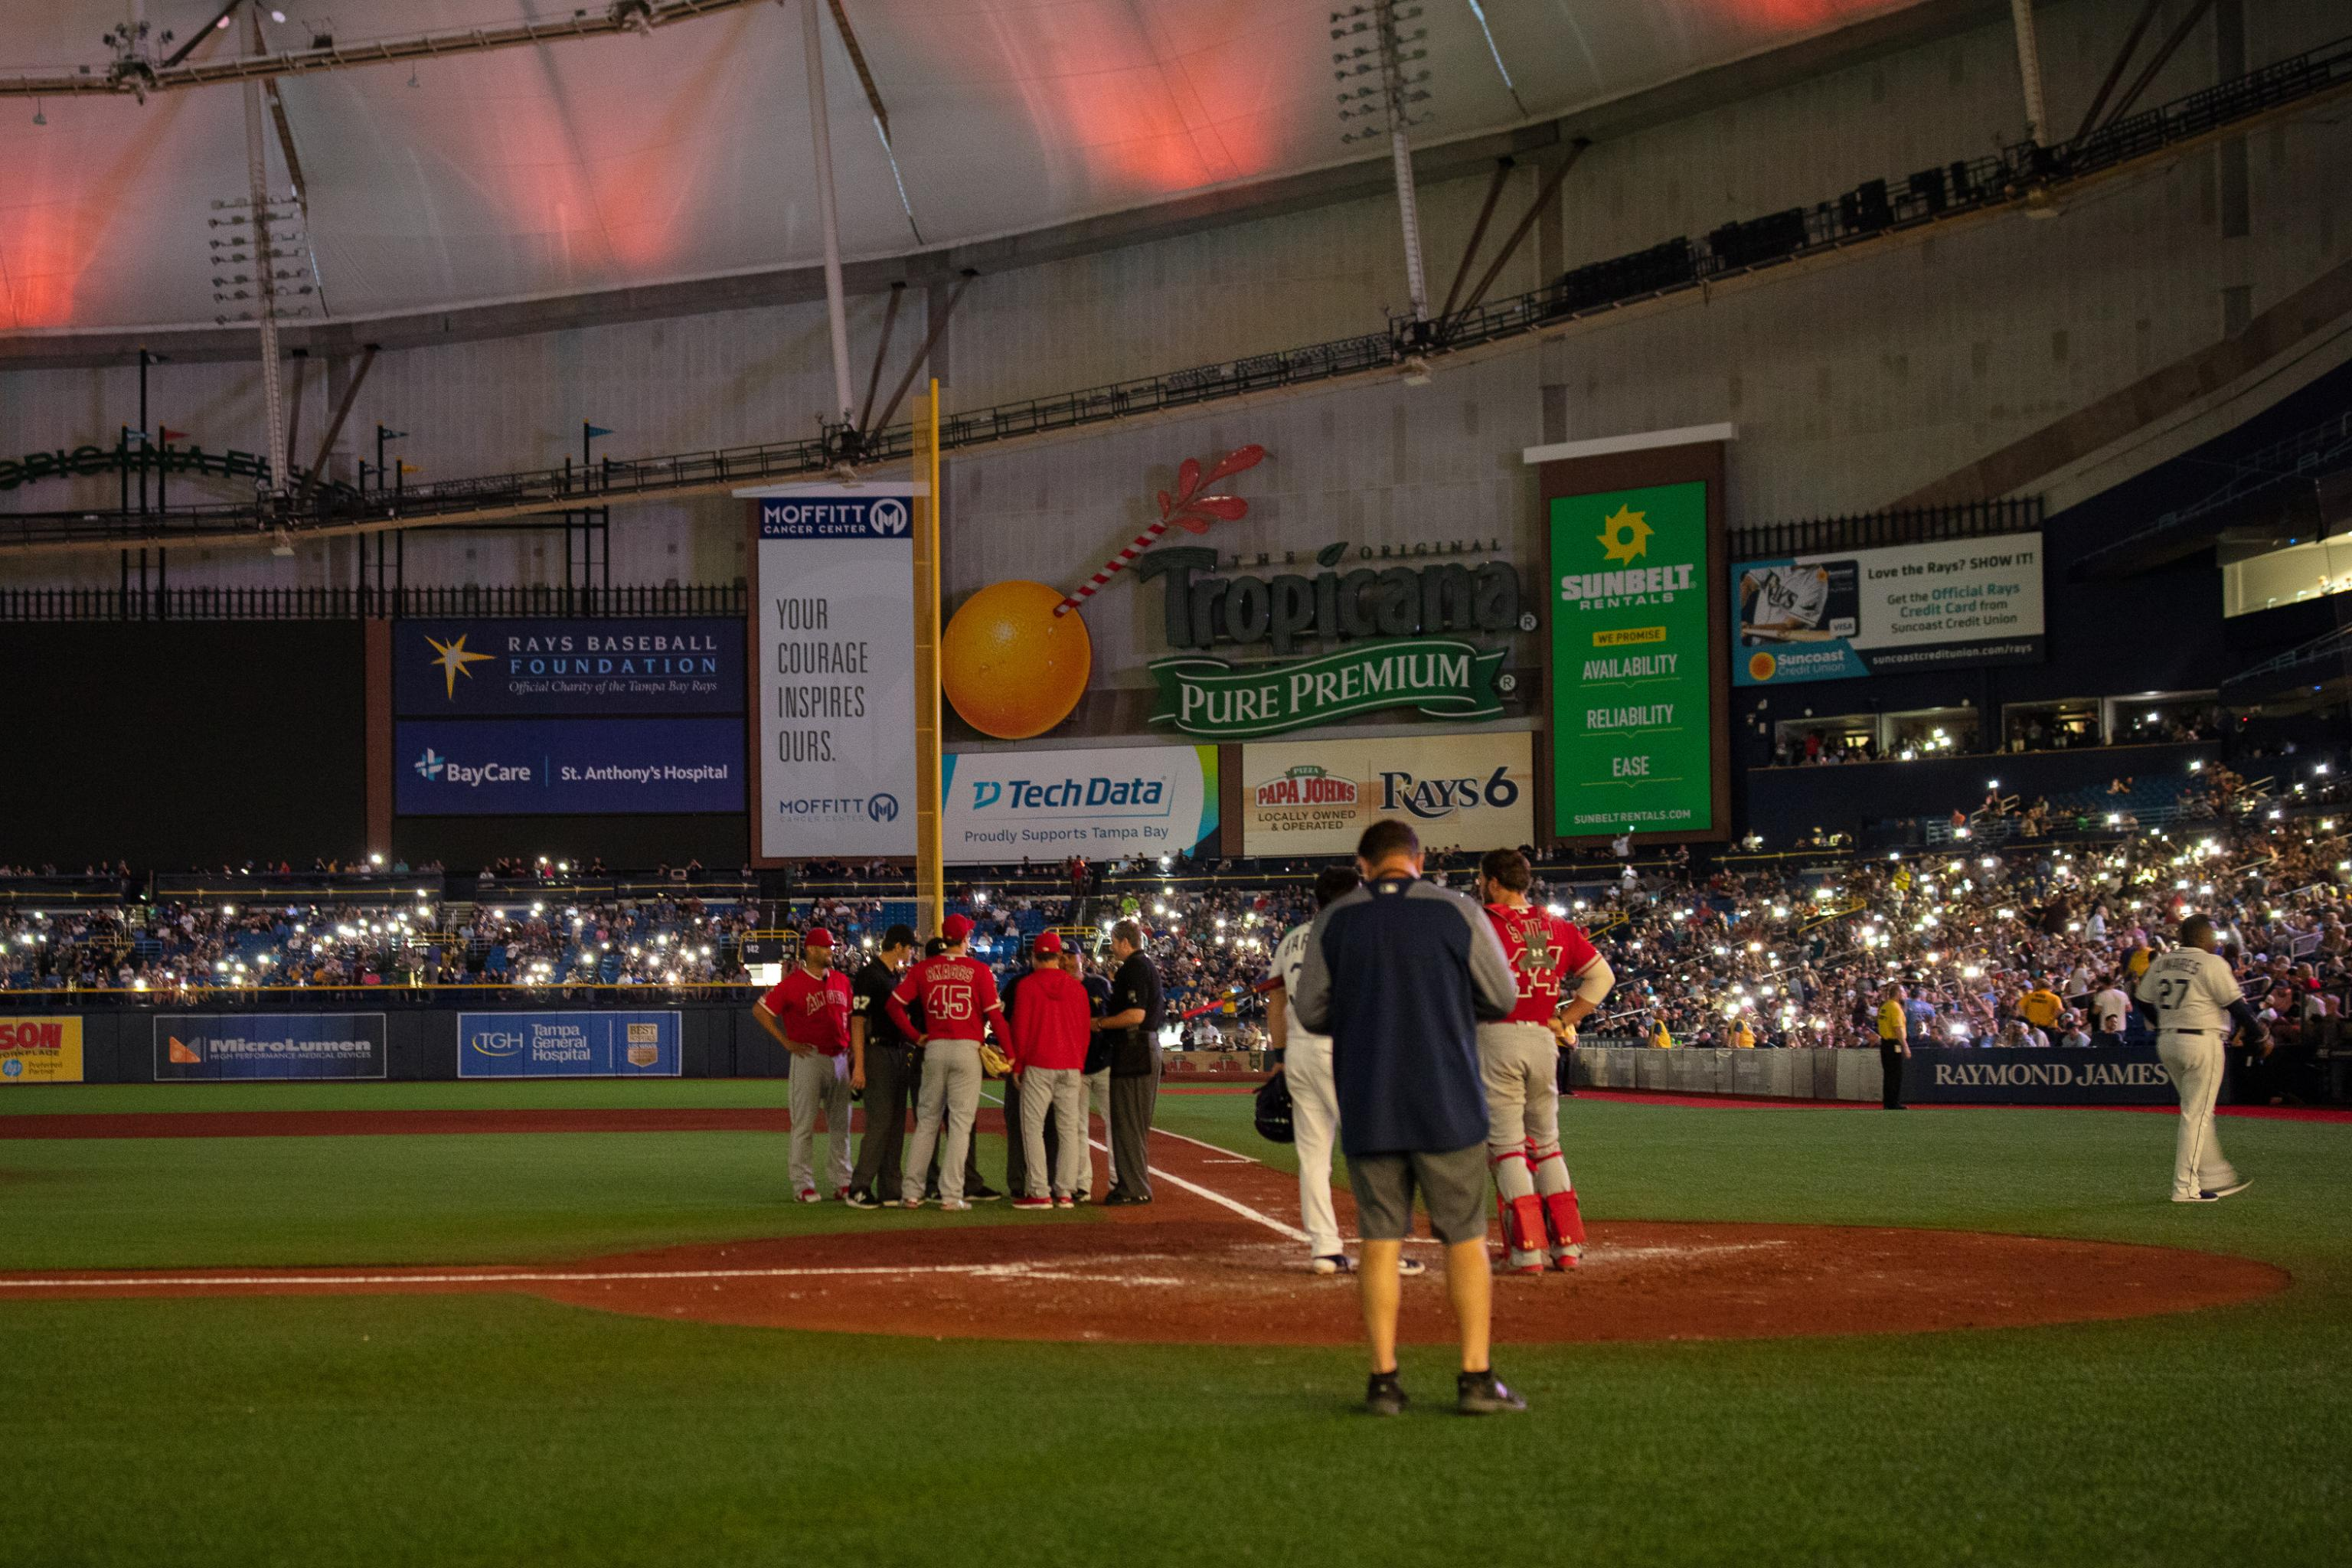 Video: Angels vs  Rays Delayed After Lights Go out at